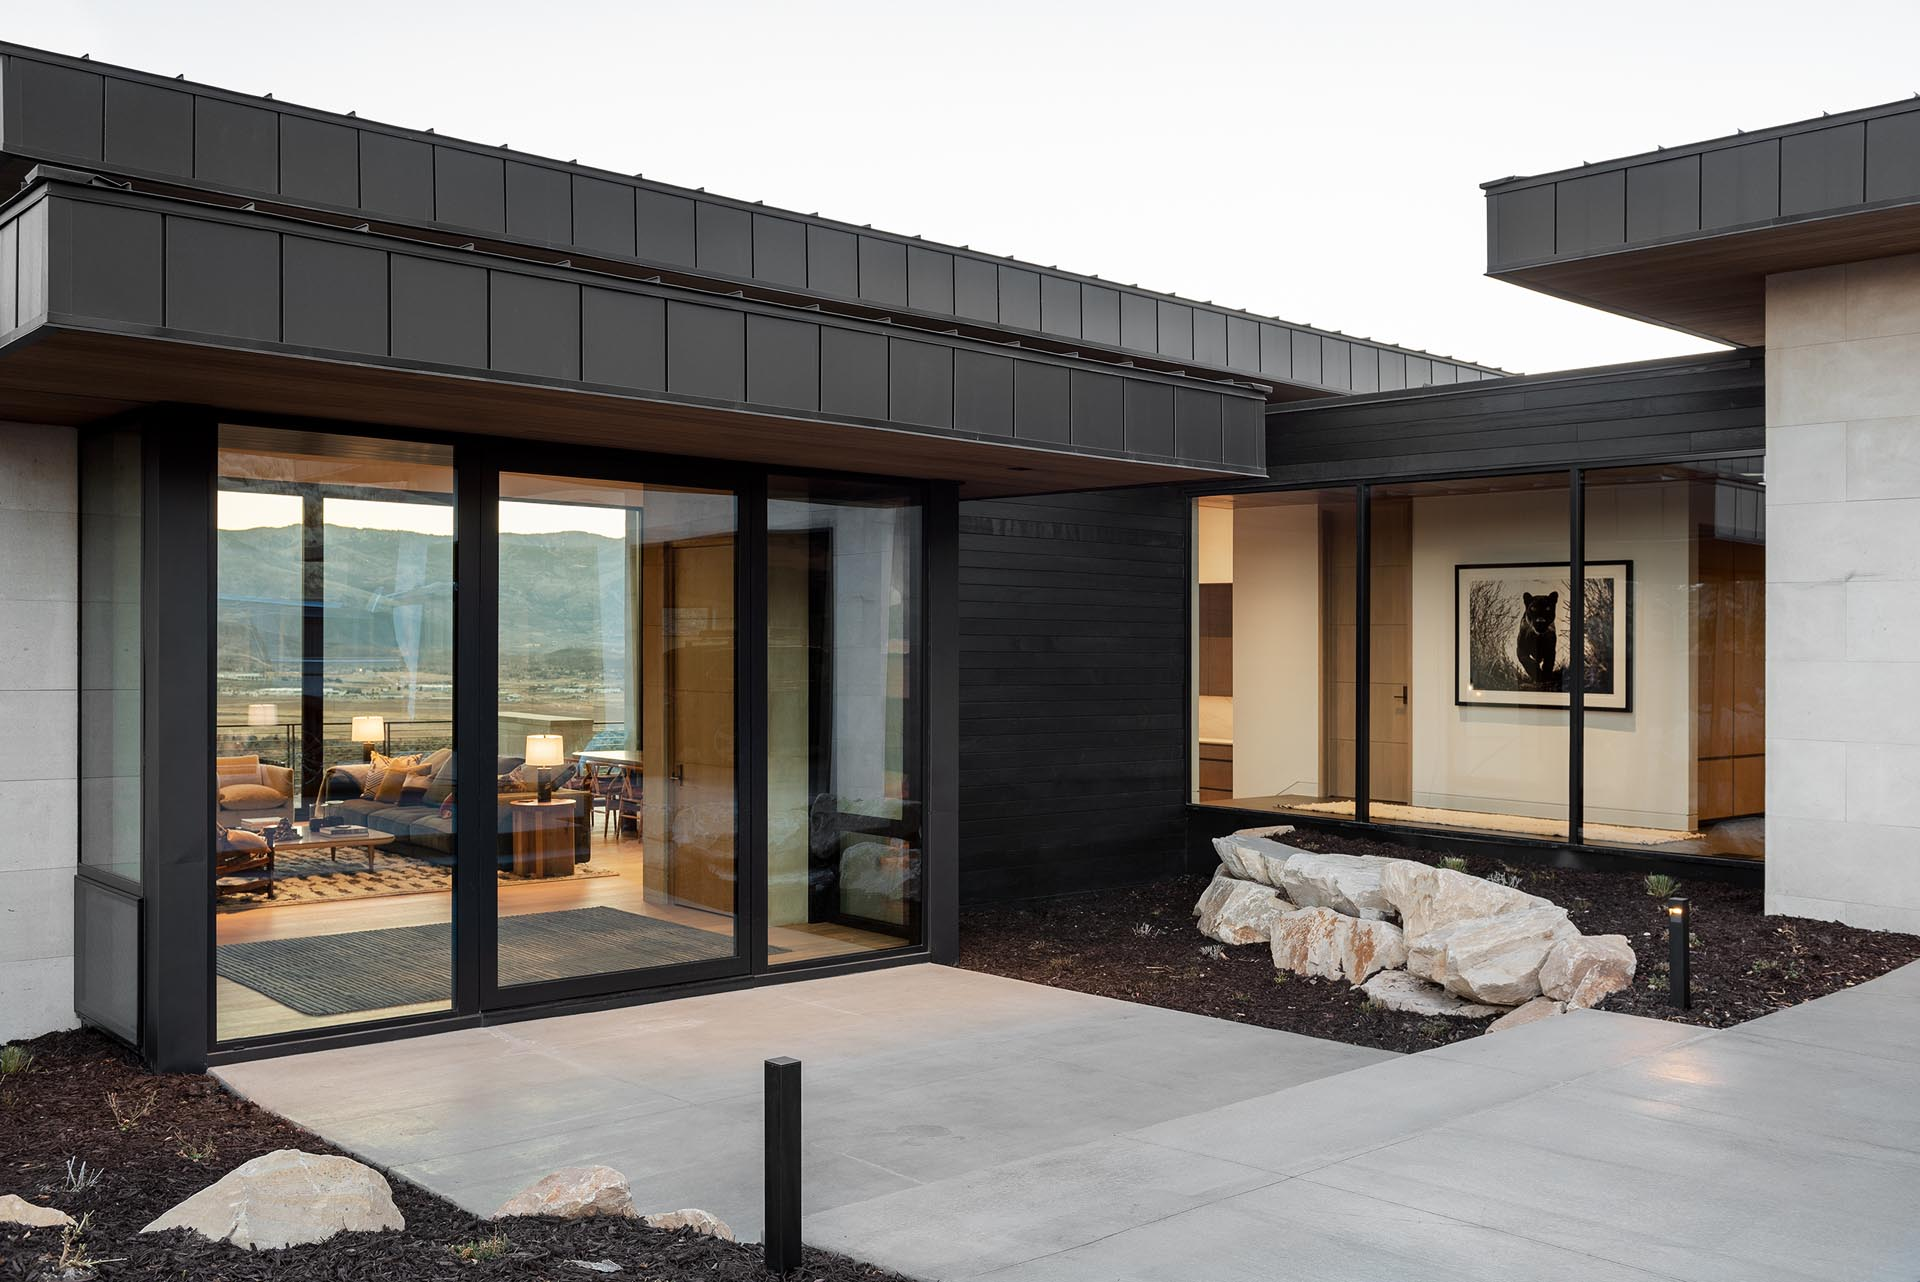 The exterior of this home includes exposed concrete and black siding, while a glass front door gives a glimpse of the interior.